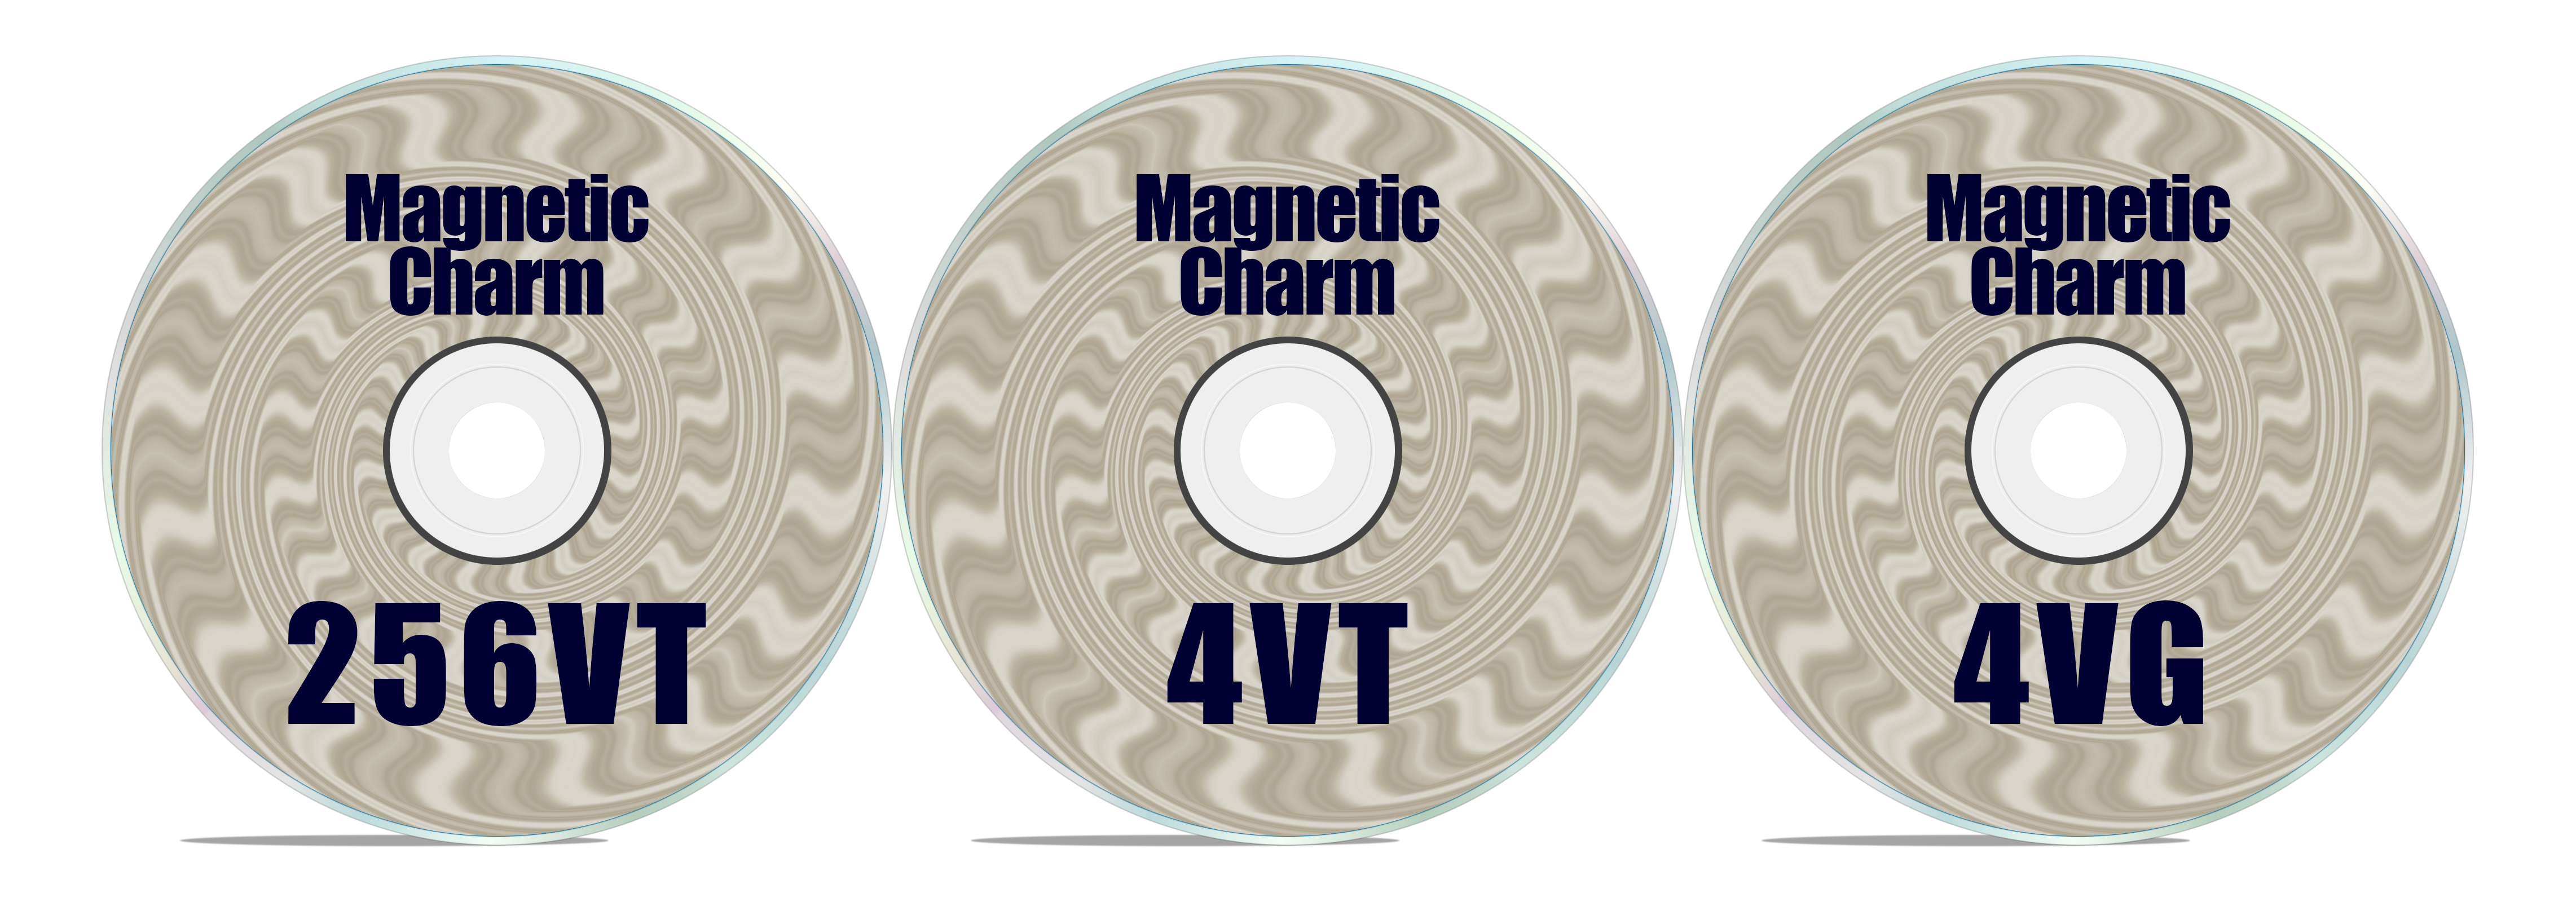 Magnetic Charm